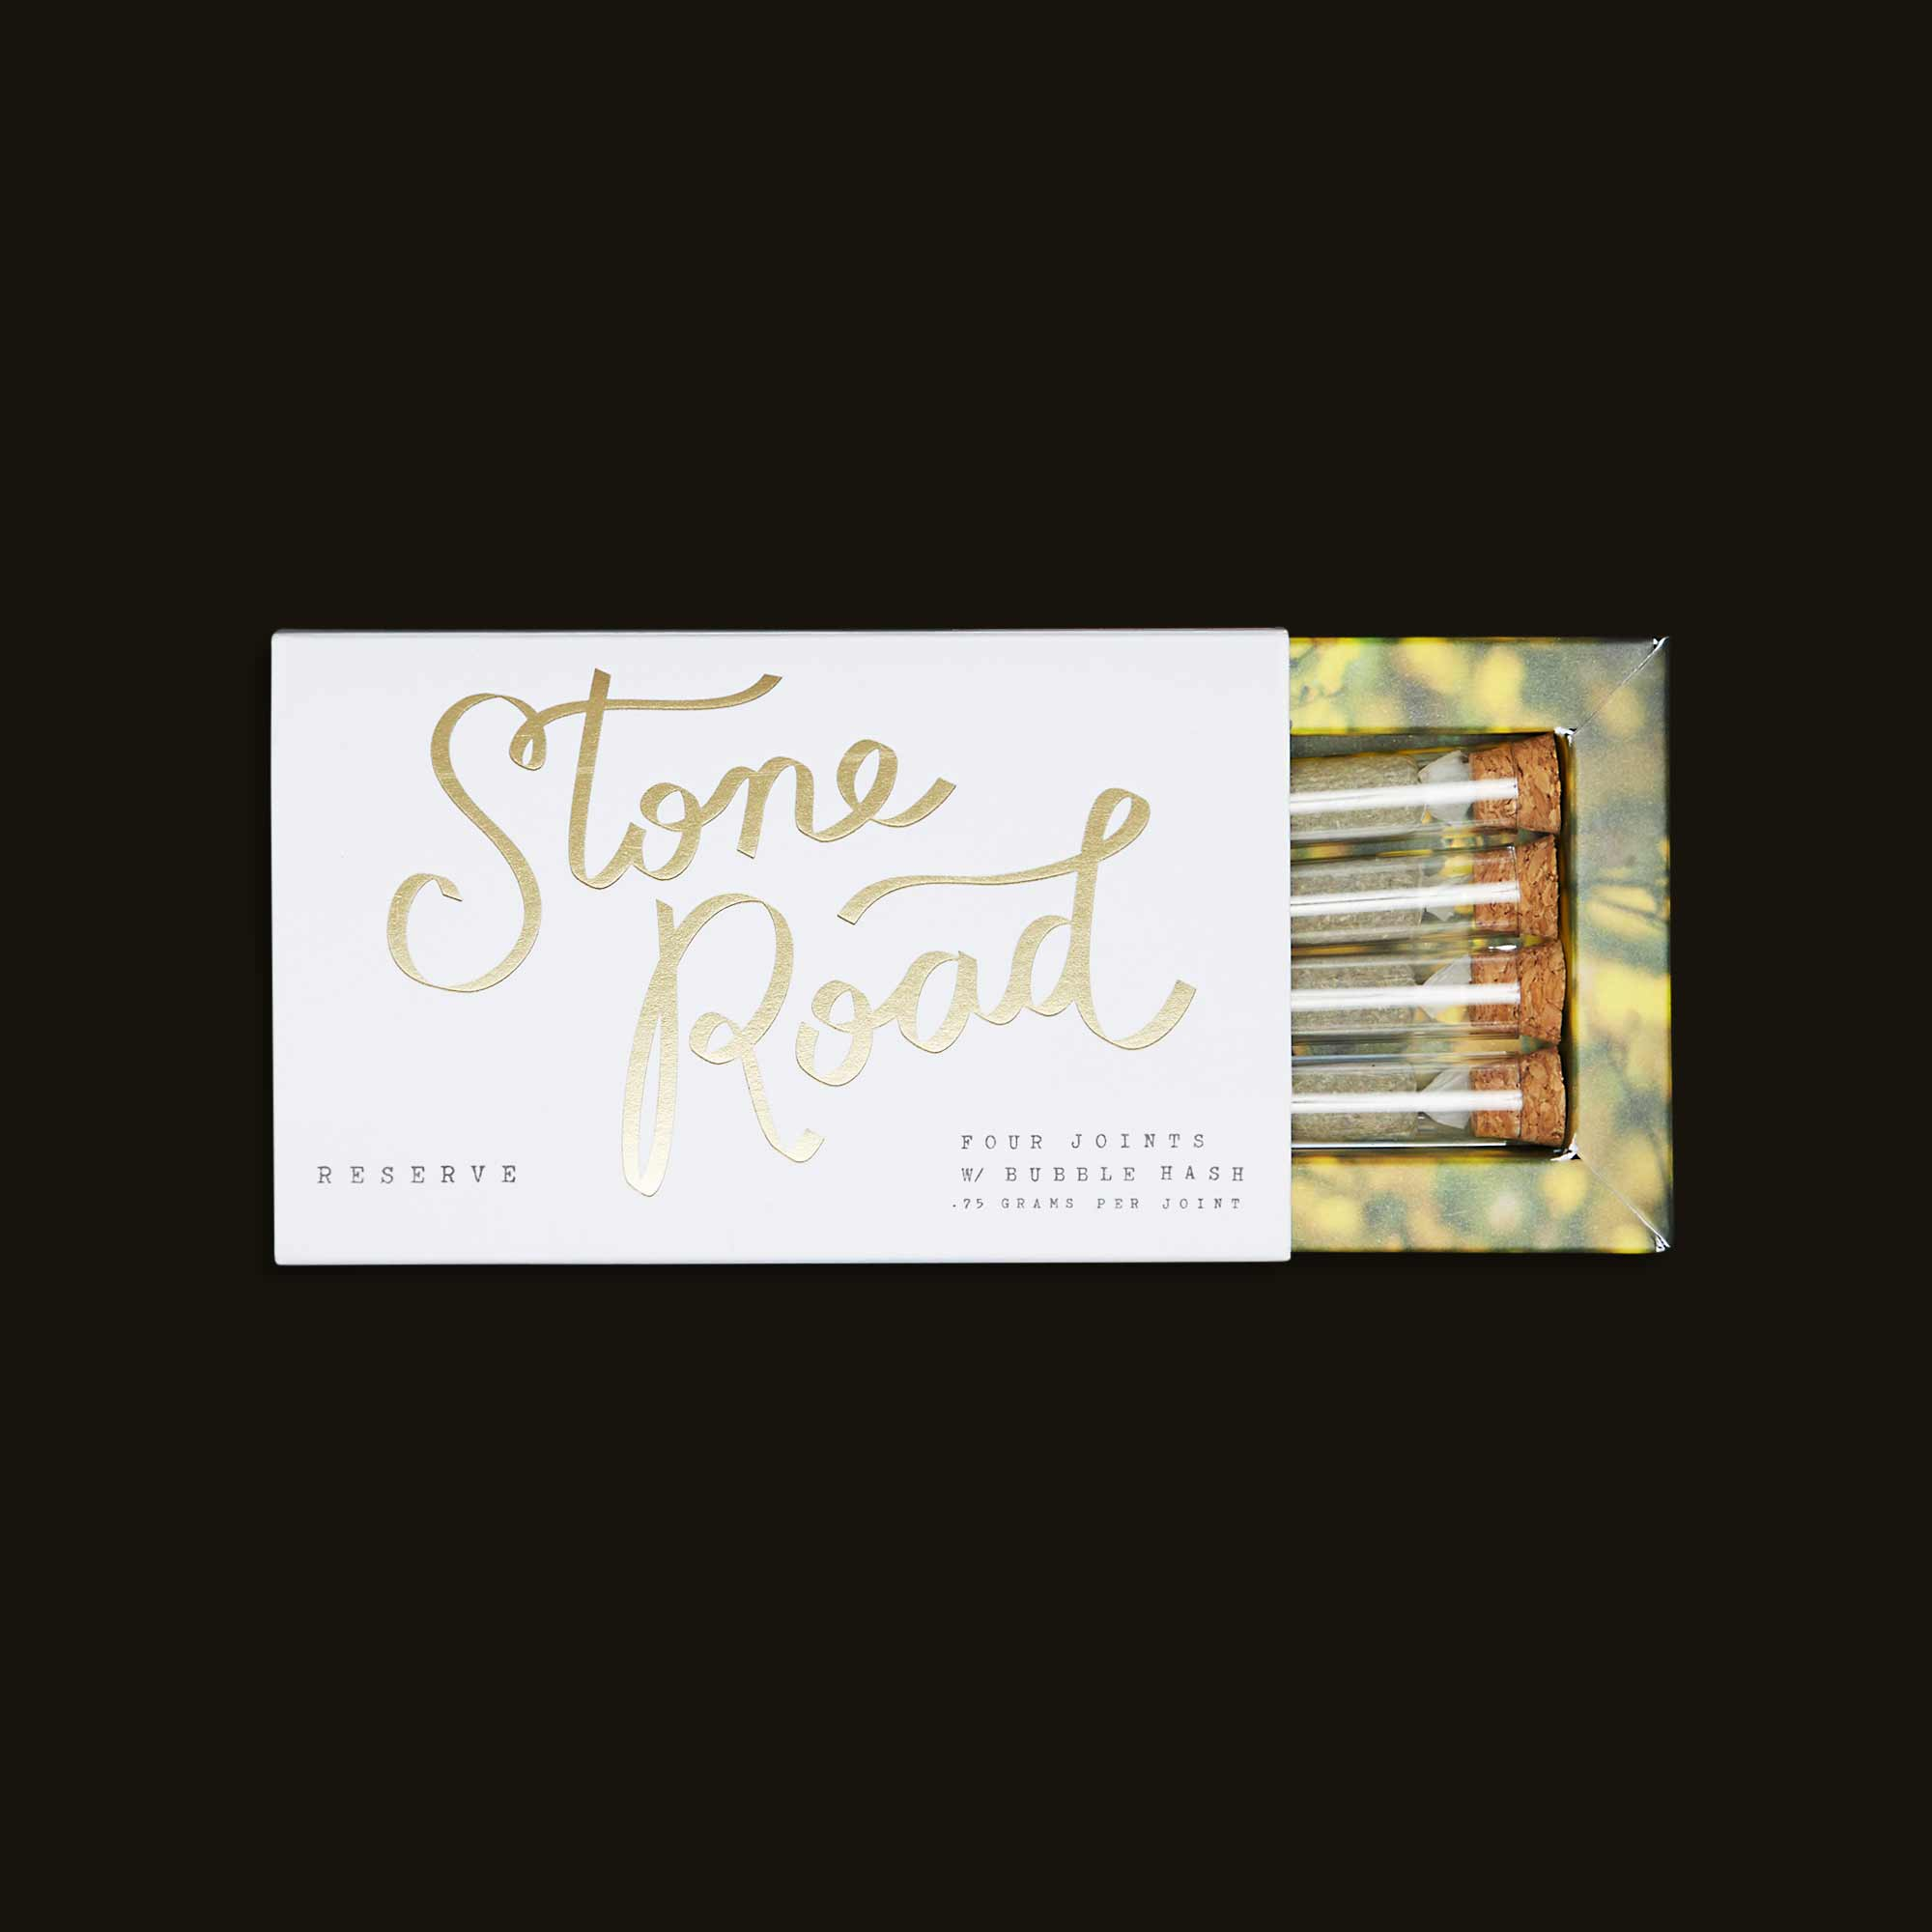 Stone Road Reserve - Four 0.75g hash infused joints